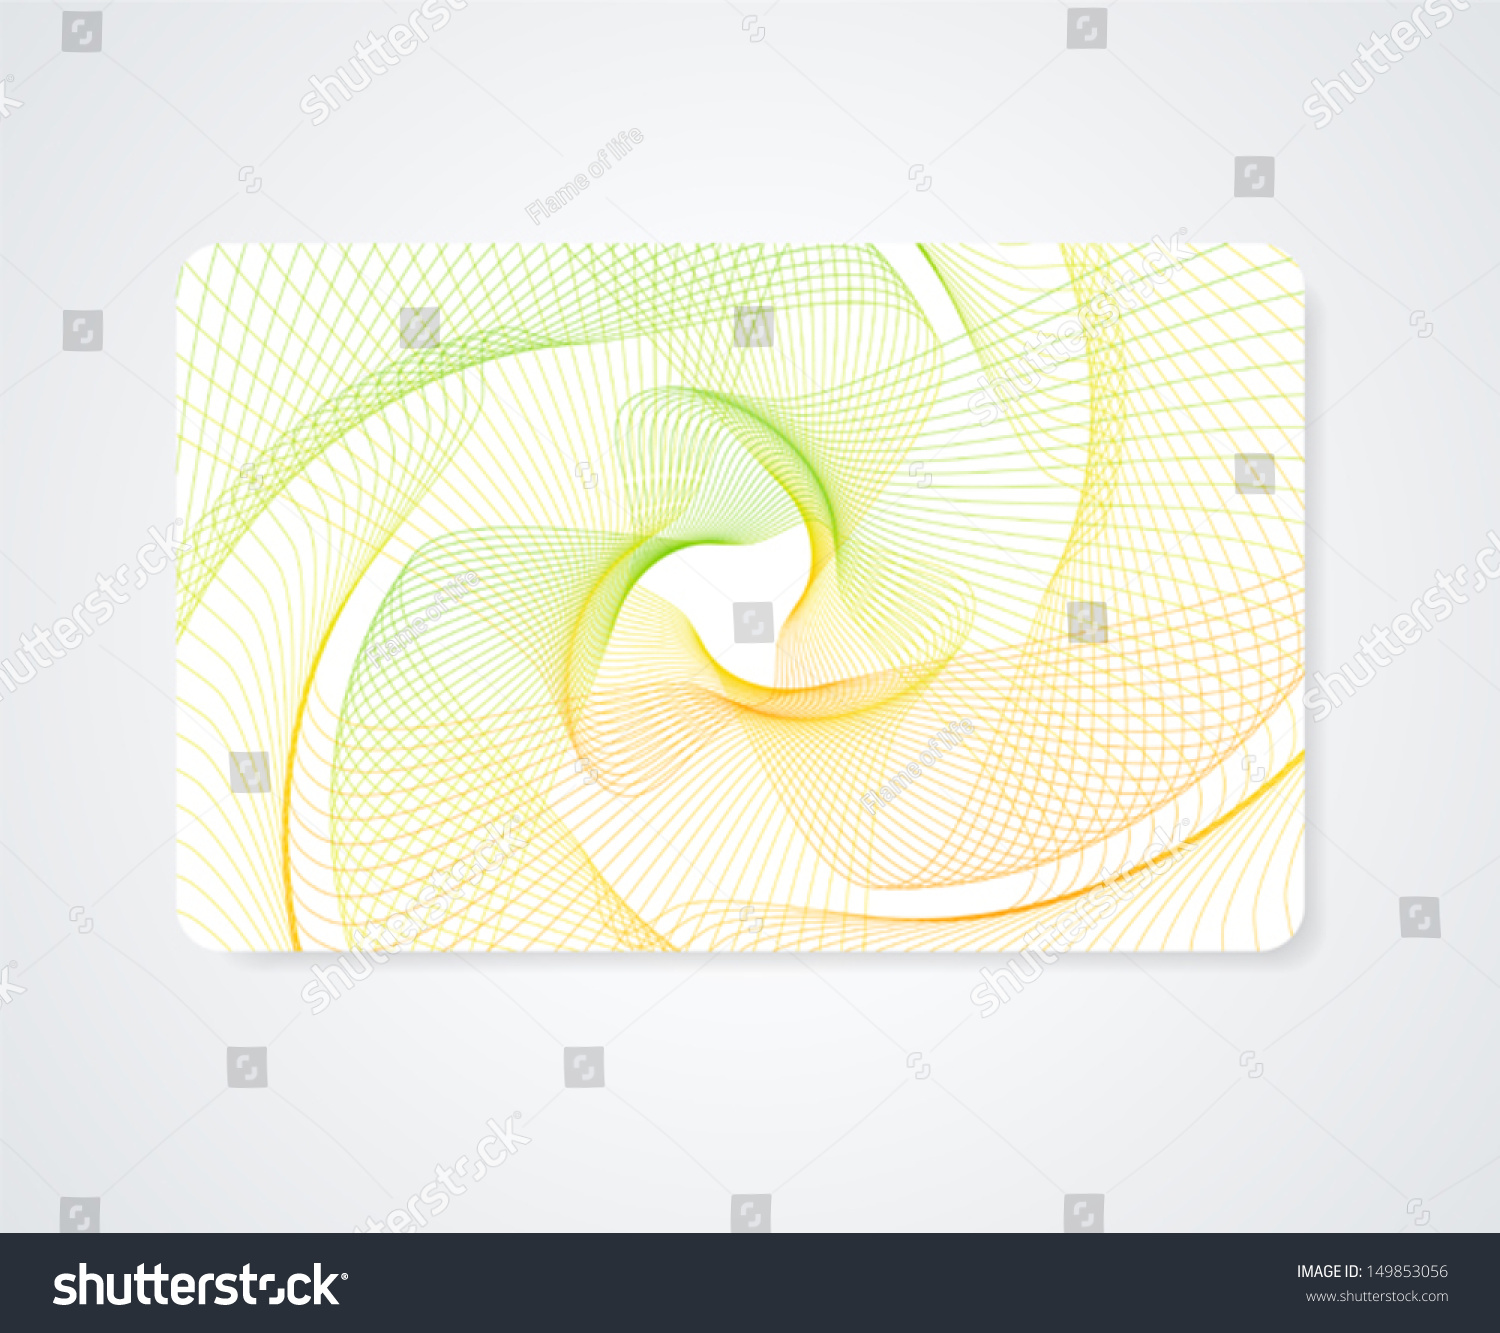 Magnificent Watermark Business Card Contemporary - Business Card ...